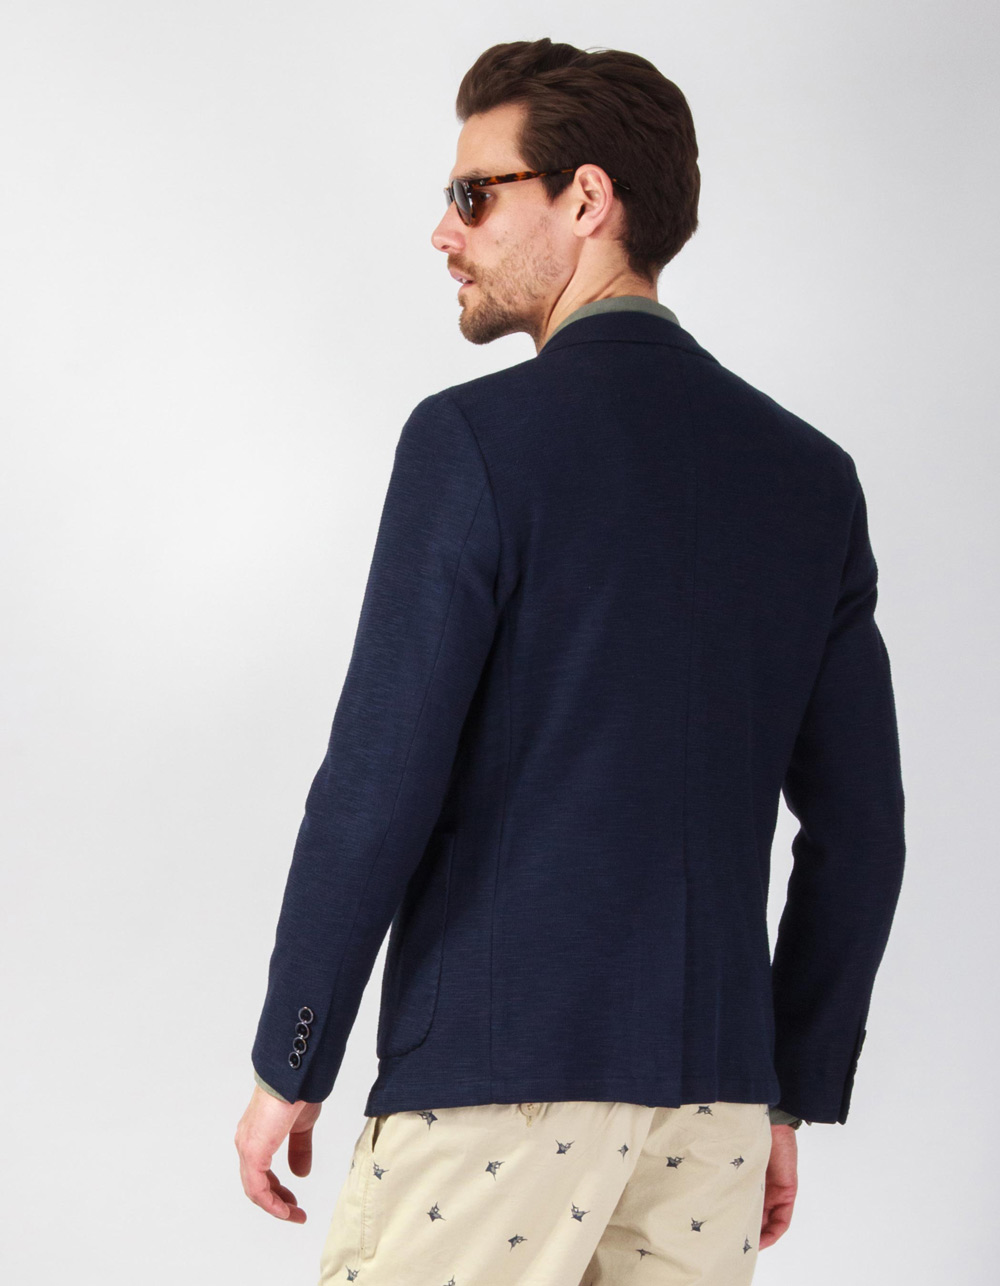 Navy blue structure blazer - Backside